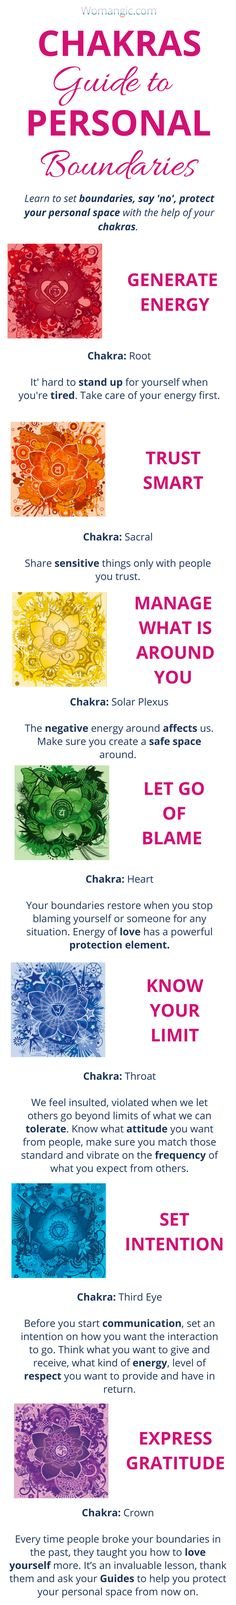 Have you ever felt that other people use or disrespect you? if yes, then this article is for you. Boundaries are essential to learning about any women. Unless you're a confidence guru, check how effectively set boundaries with your chakras and 3 habits you need in the article. Chakra, Chakra Balancing, Root, Sacral, Solar Plexus, Heart, Throat, Third Eye, Crown, Chakra meaning, Chakra affirmation, Chakra Mantra, Chakra Energy, Energy, Chakra articles, Chakra Healing, Chakra Cleanse, Chakra…